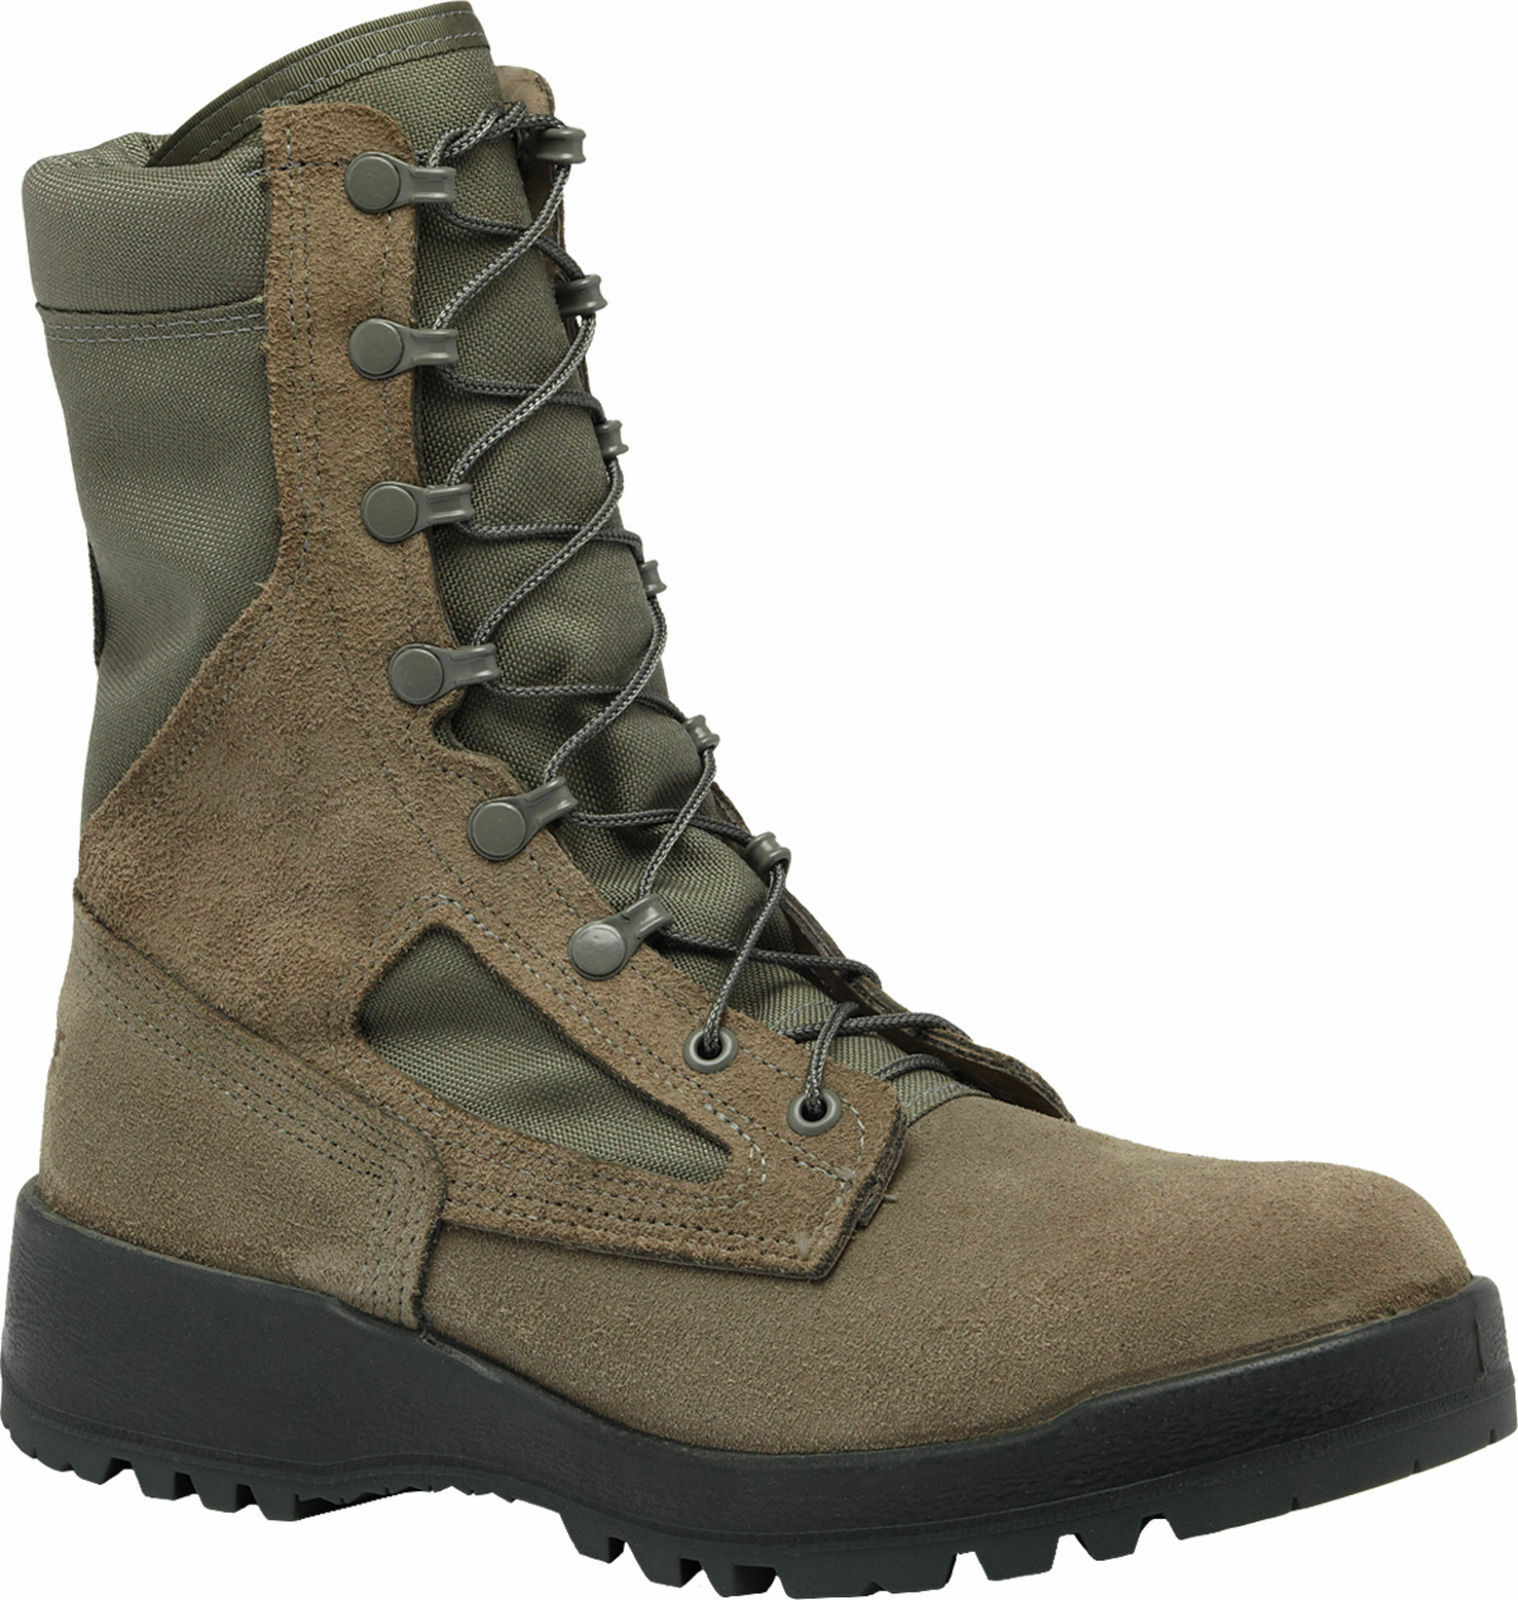 Belleville Hot Weather Steel Toe Boots 600ST Sage Leather Sz 6.5R - NEW IN BOX